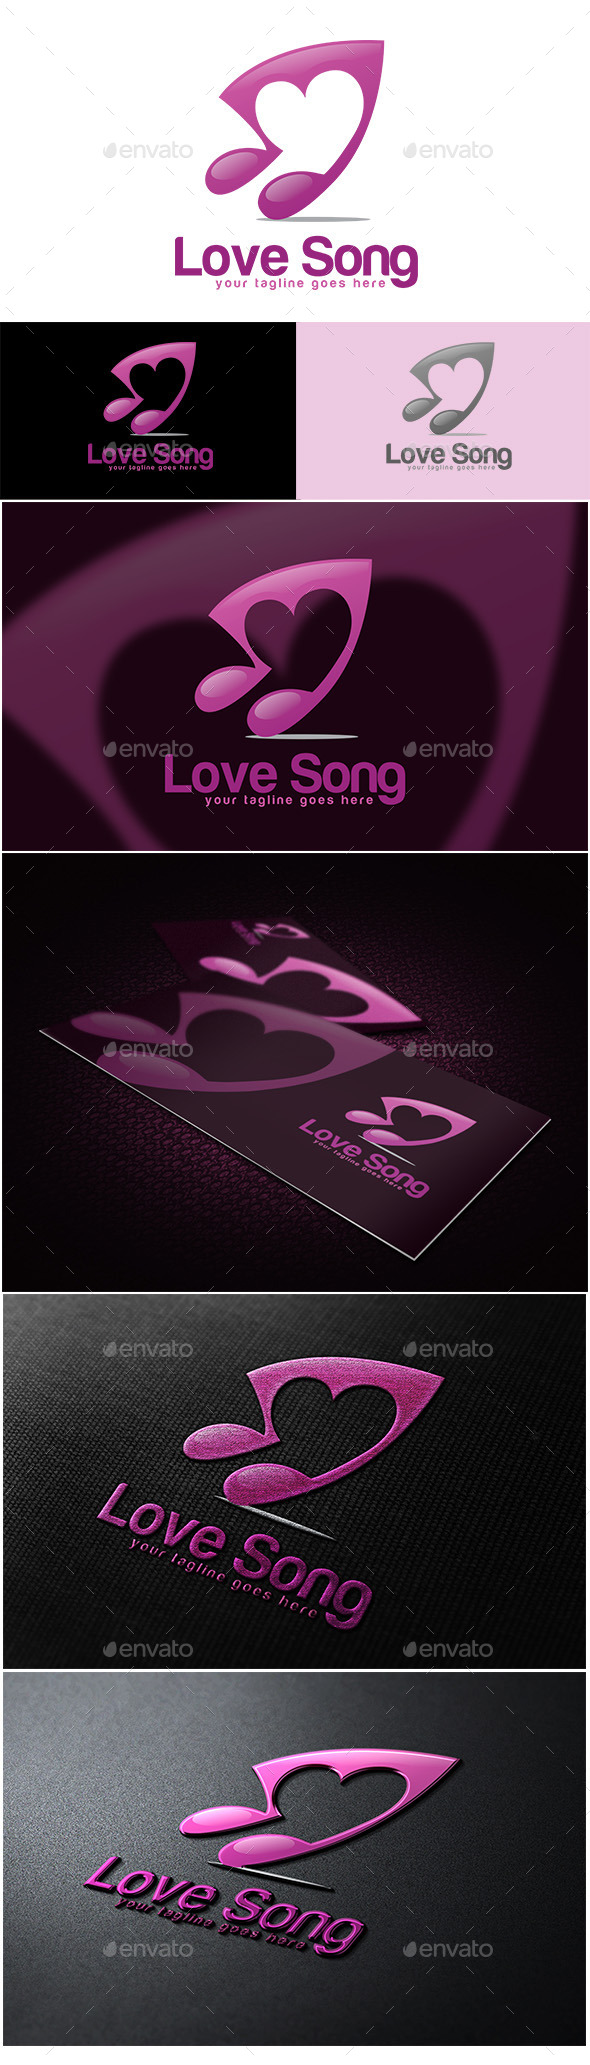 GraphicRiver Love Song Logo 10636327